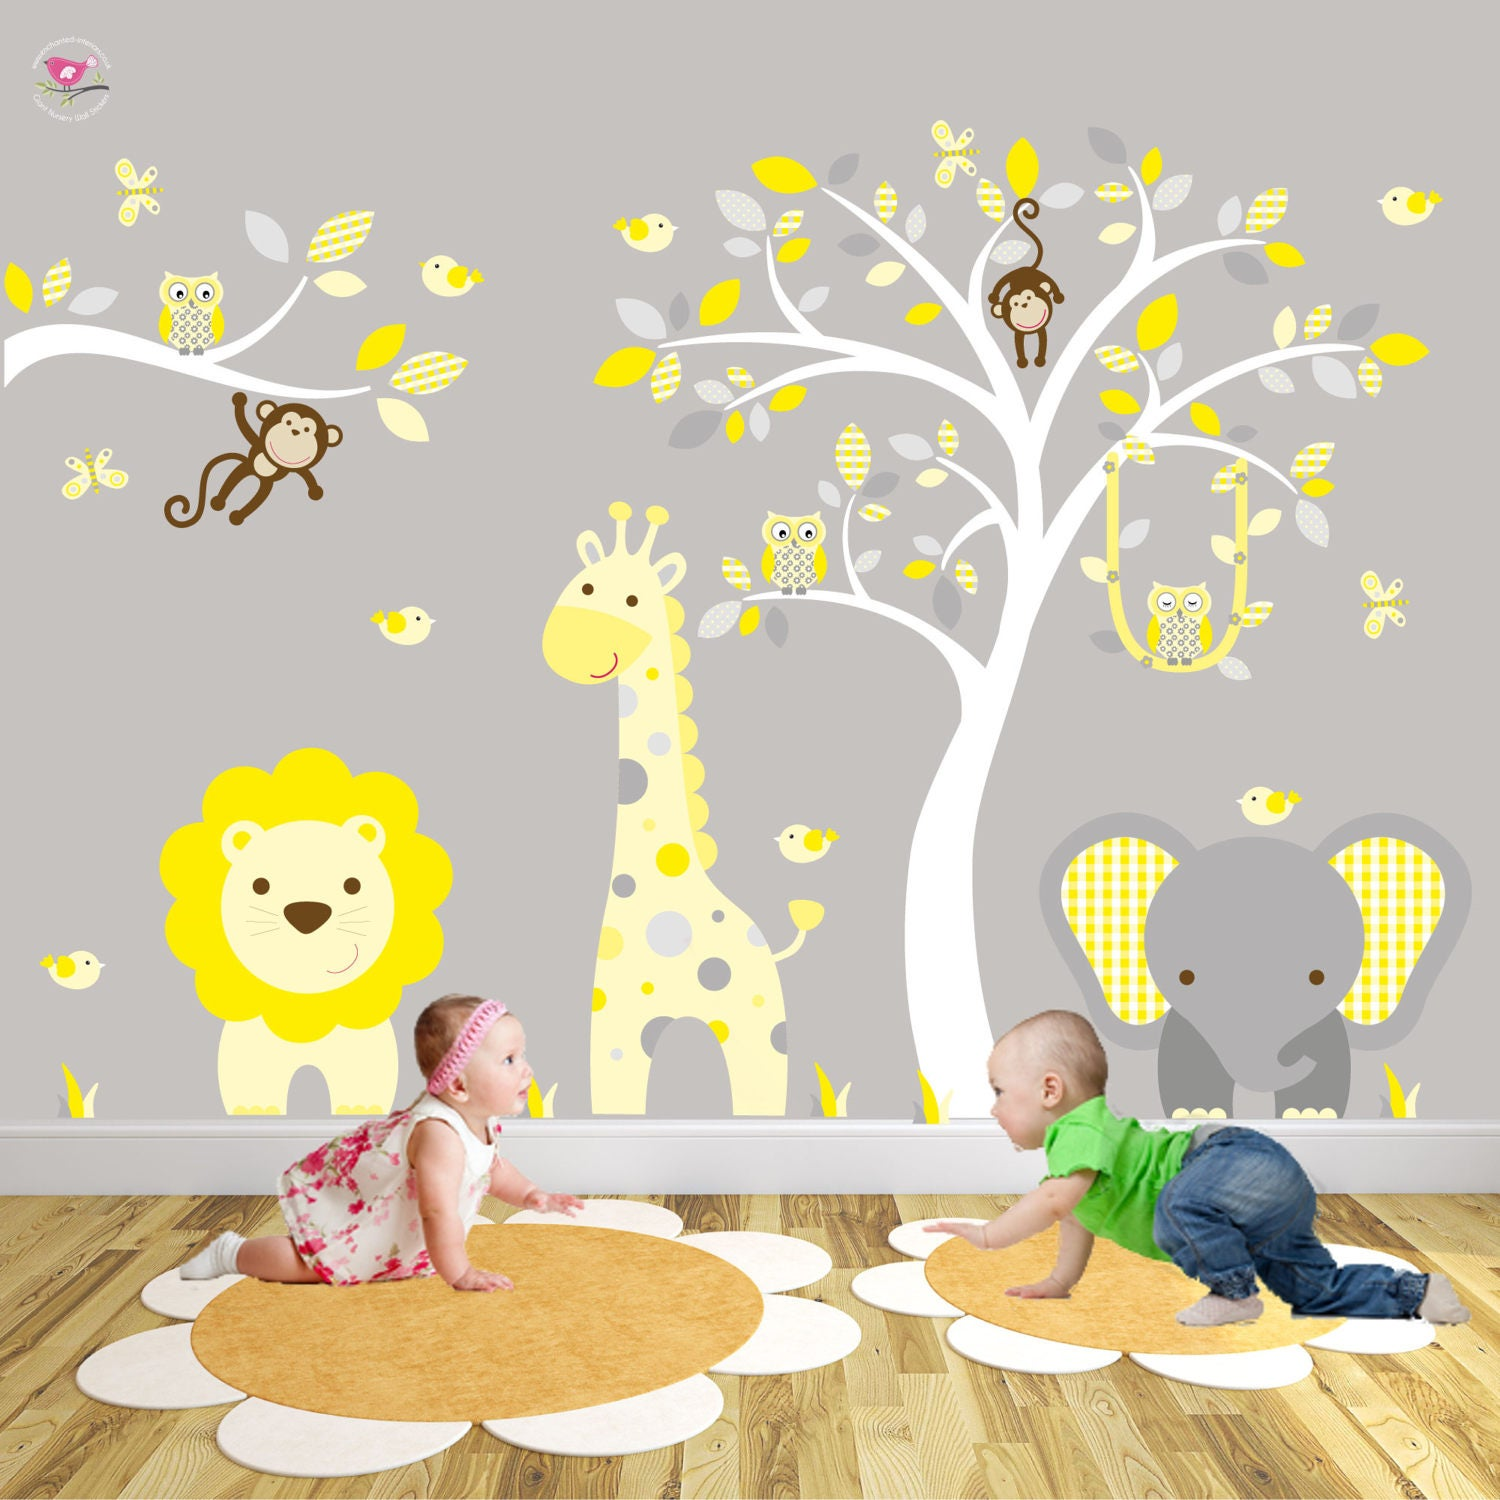 Jungle Nursery Wall Stickers Yellow and Grey Decals. | Etsy